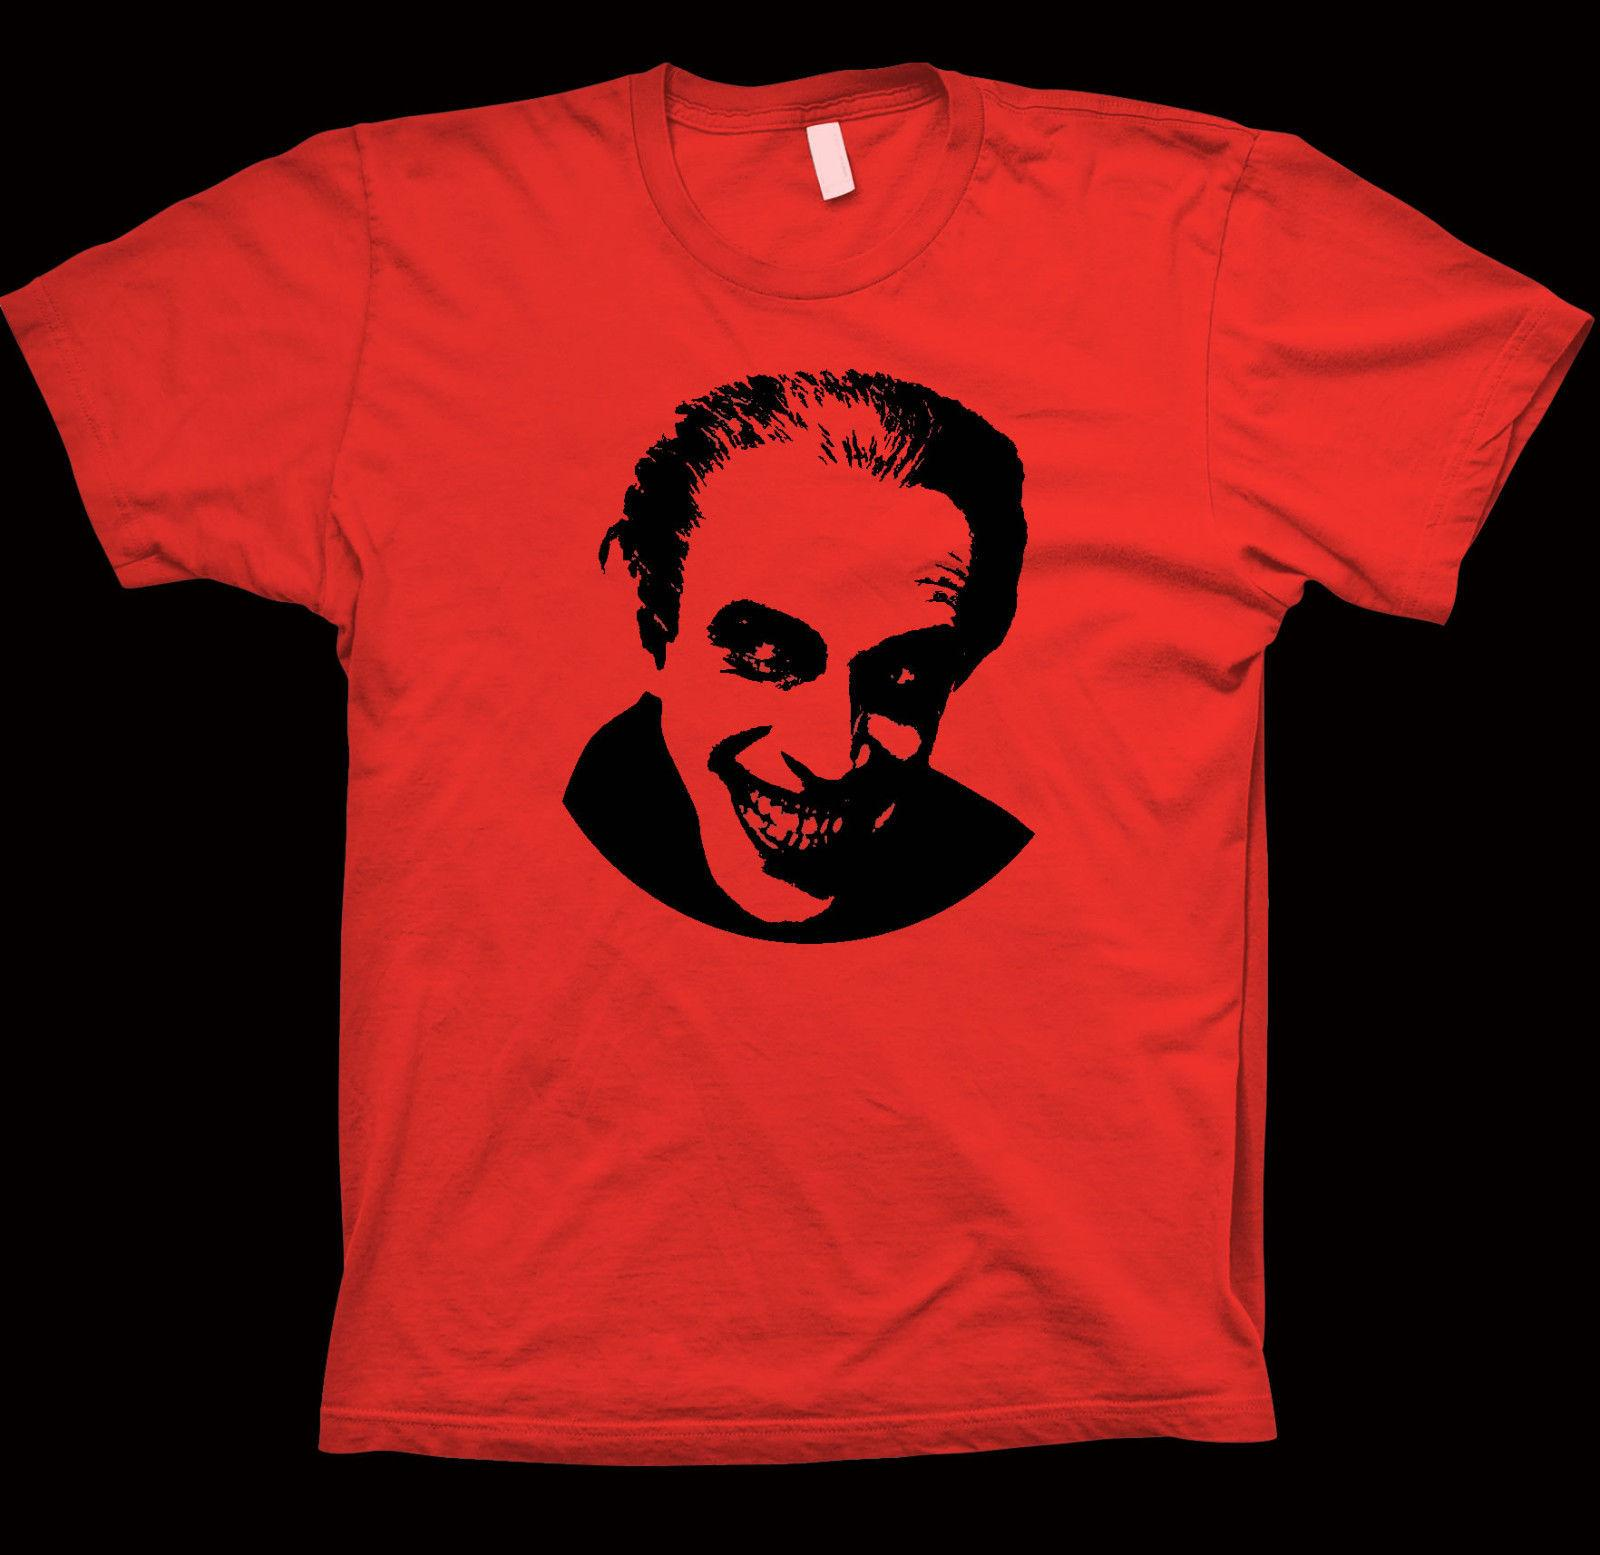 The Man Who Laughs T-Shirt Paul Leni, Victor Hugo, Mary Philbin, Cinema FilmShort Sleeve Plus Size t-shirt colour jersey Print t shirt